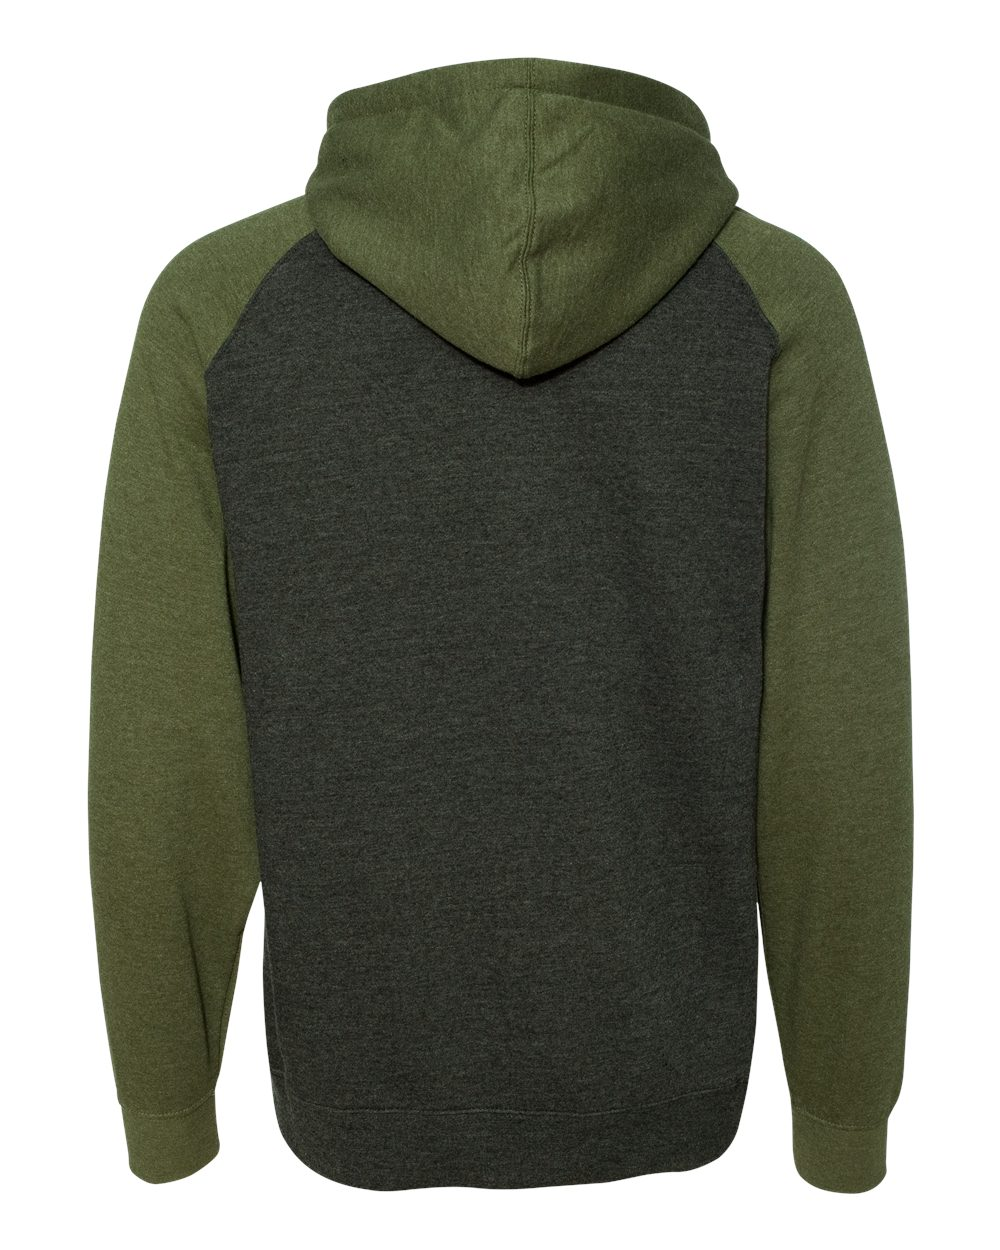 Independent-Trading-Co-Mens-Raglan-Hooded-Pullover-Sweatshirt-IND40RP-up-to-3XL miniature 7